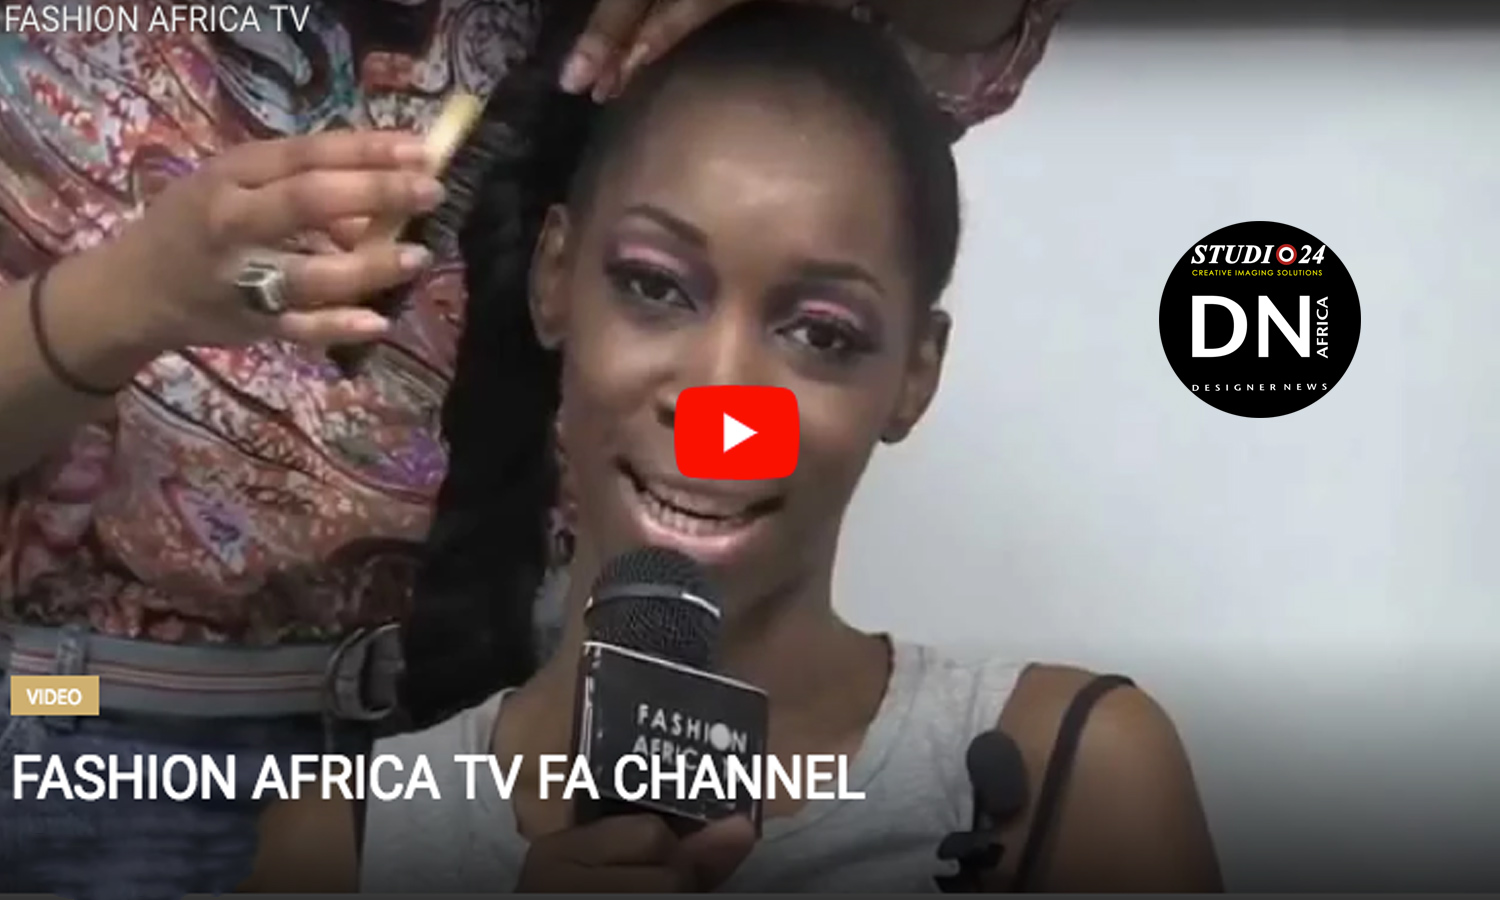 AFRICAN FASHION STYLE MAGAZINE - ASHION-AFRICA-TV-FA-CHANNEL - Producer Adama PARIS -Media Partner DN MAG, DN AFRICA -STUDIO 24 NIGERIA - STUDIO 24 INTERNATIONAL -